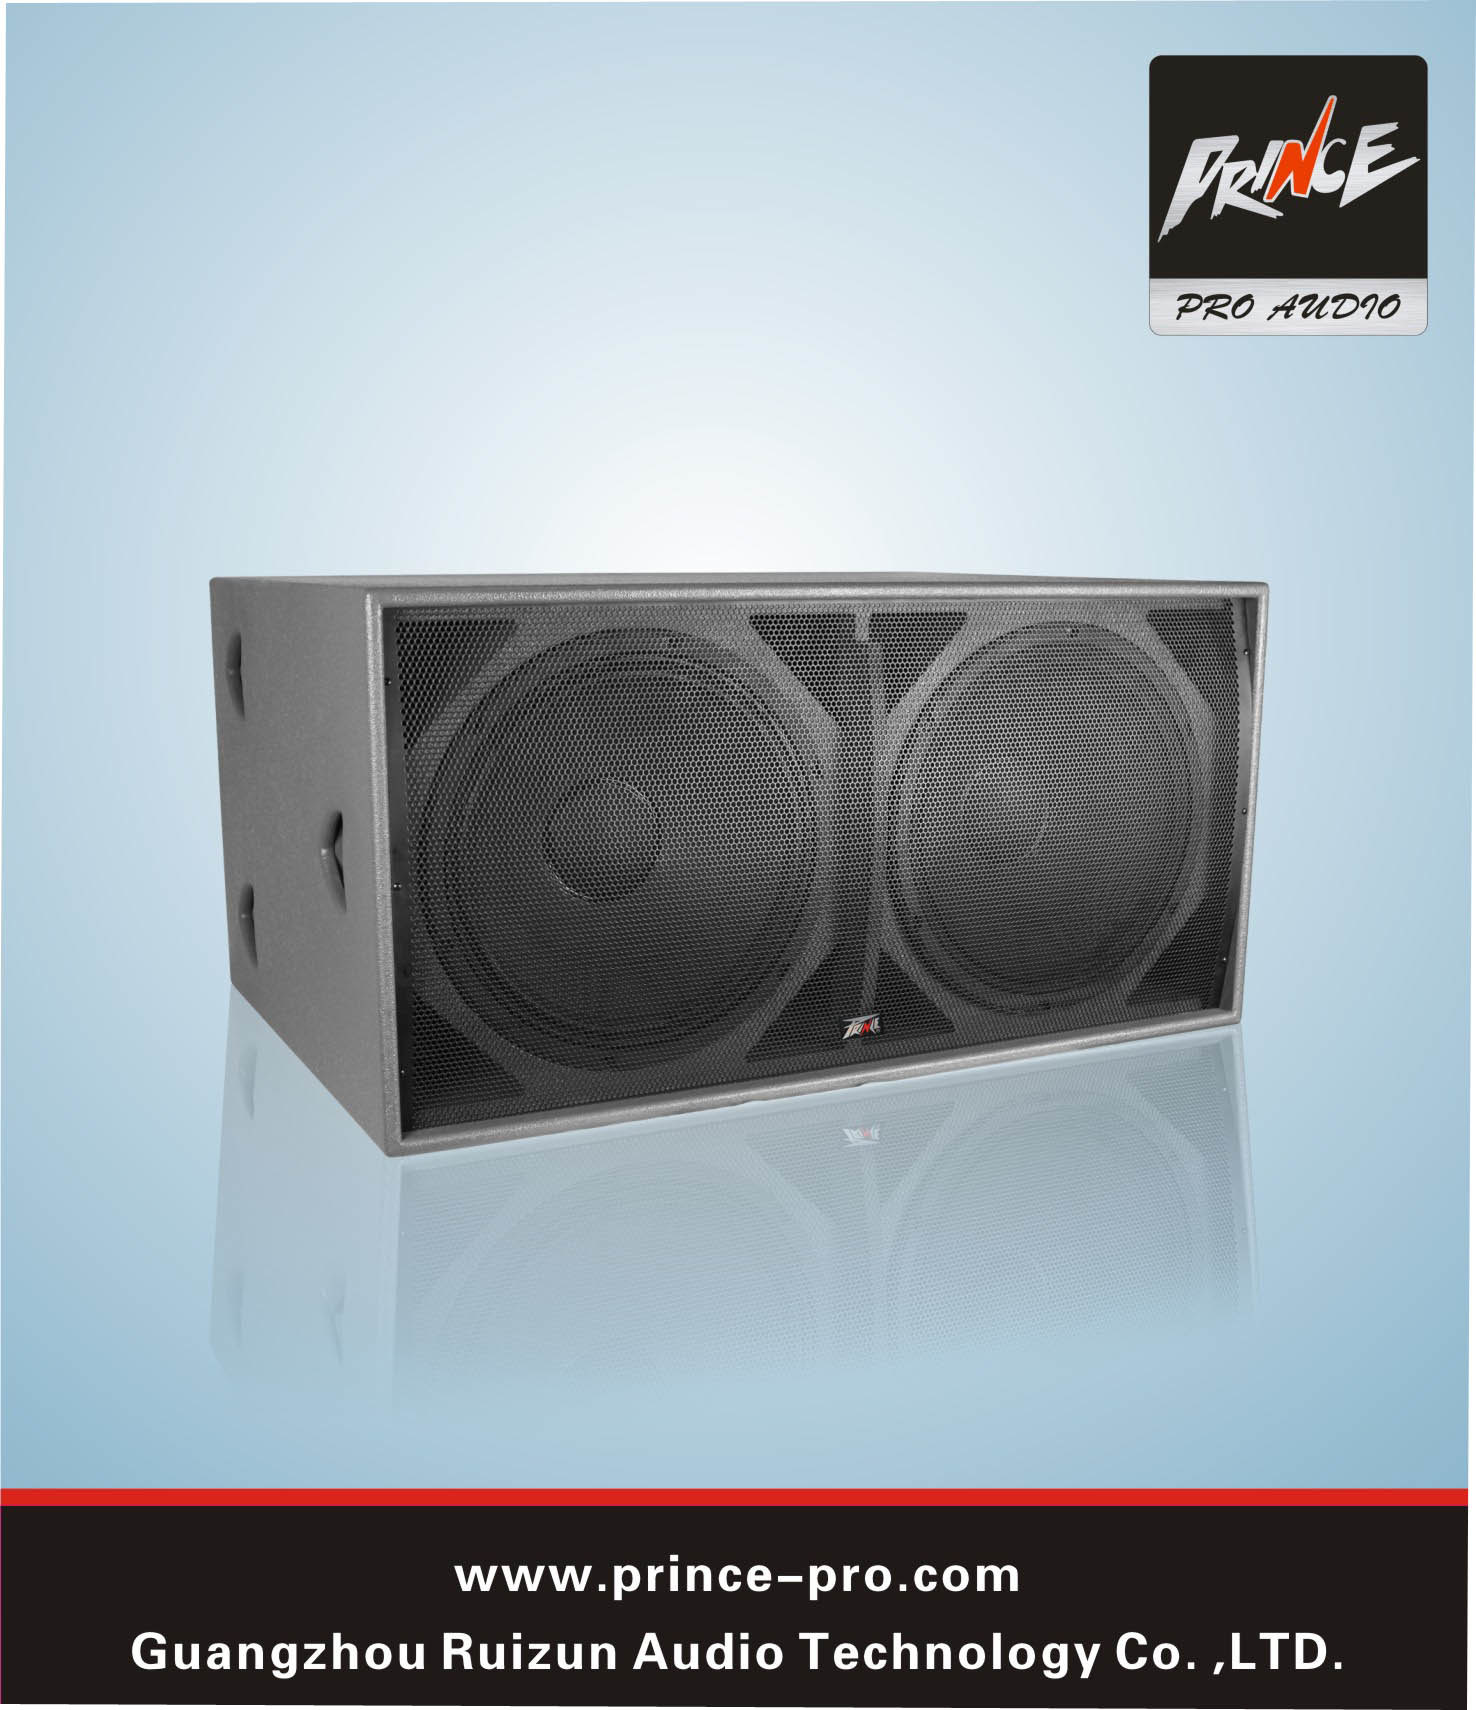 18inch High Power Ultra Compact Subwoofer PPR-328